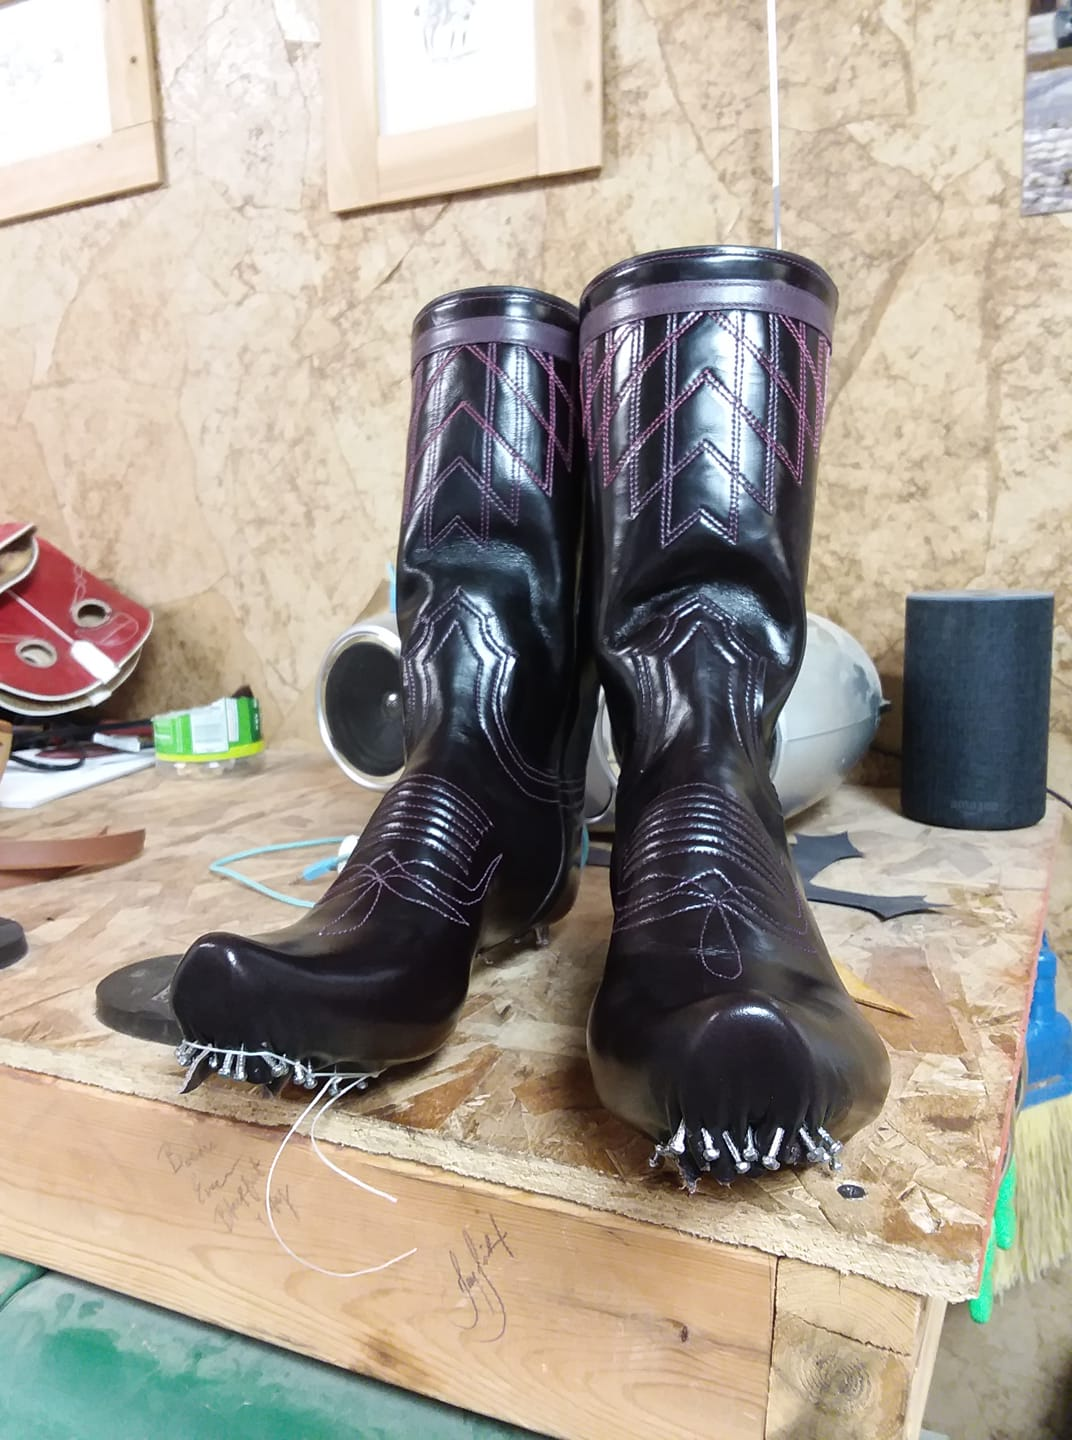 Around 35 nails per boot were used to shape the leather around a wooden last that will give the boot shape. Photo by Natalie Teichert.